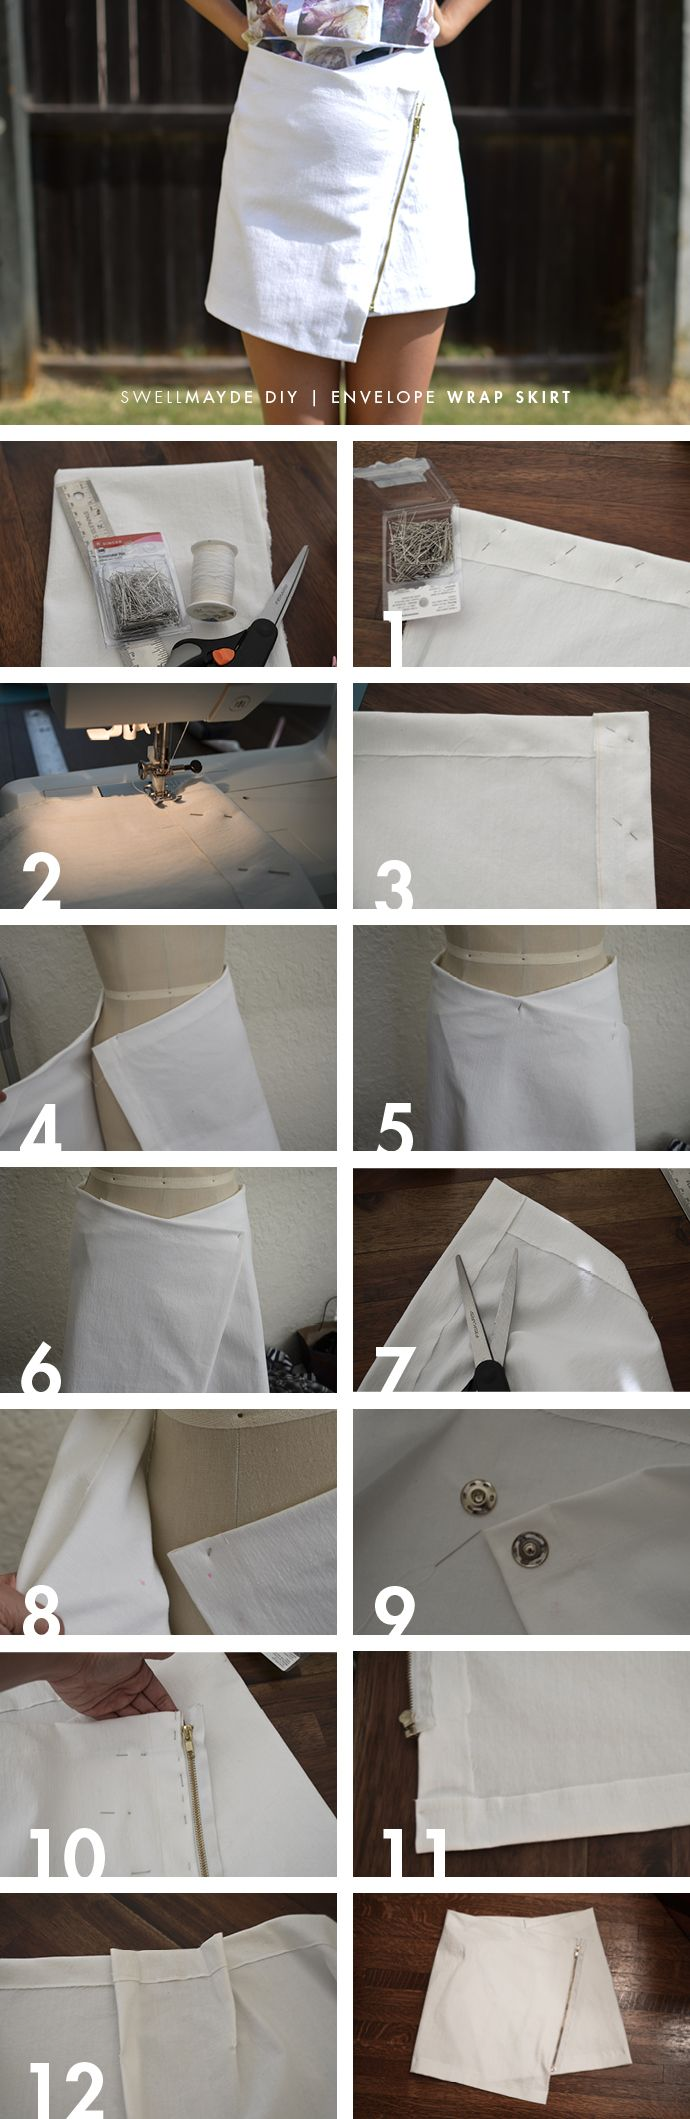 15 Fashionable DIY Clothes